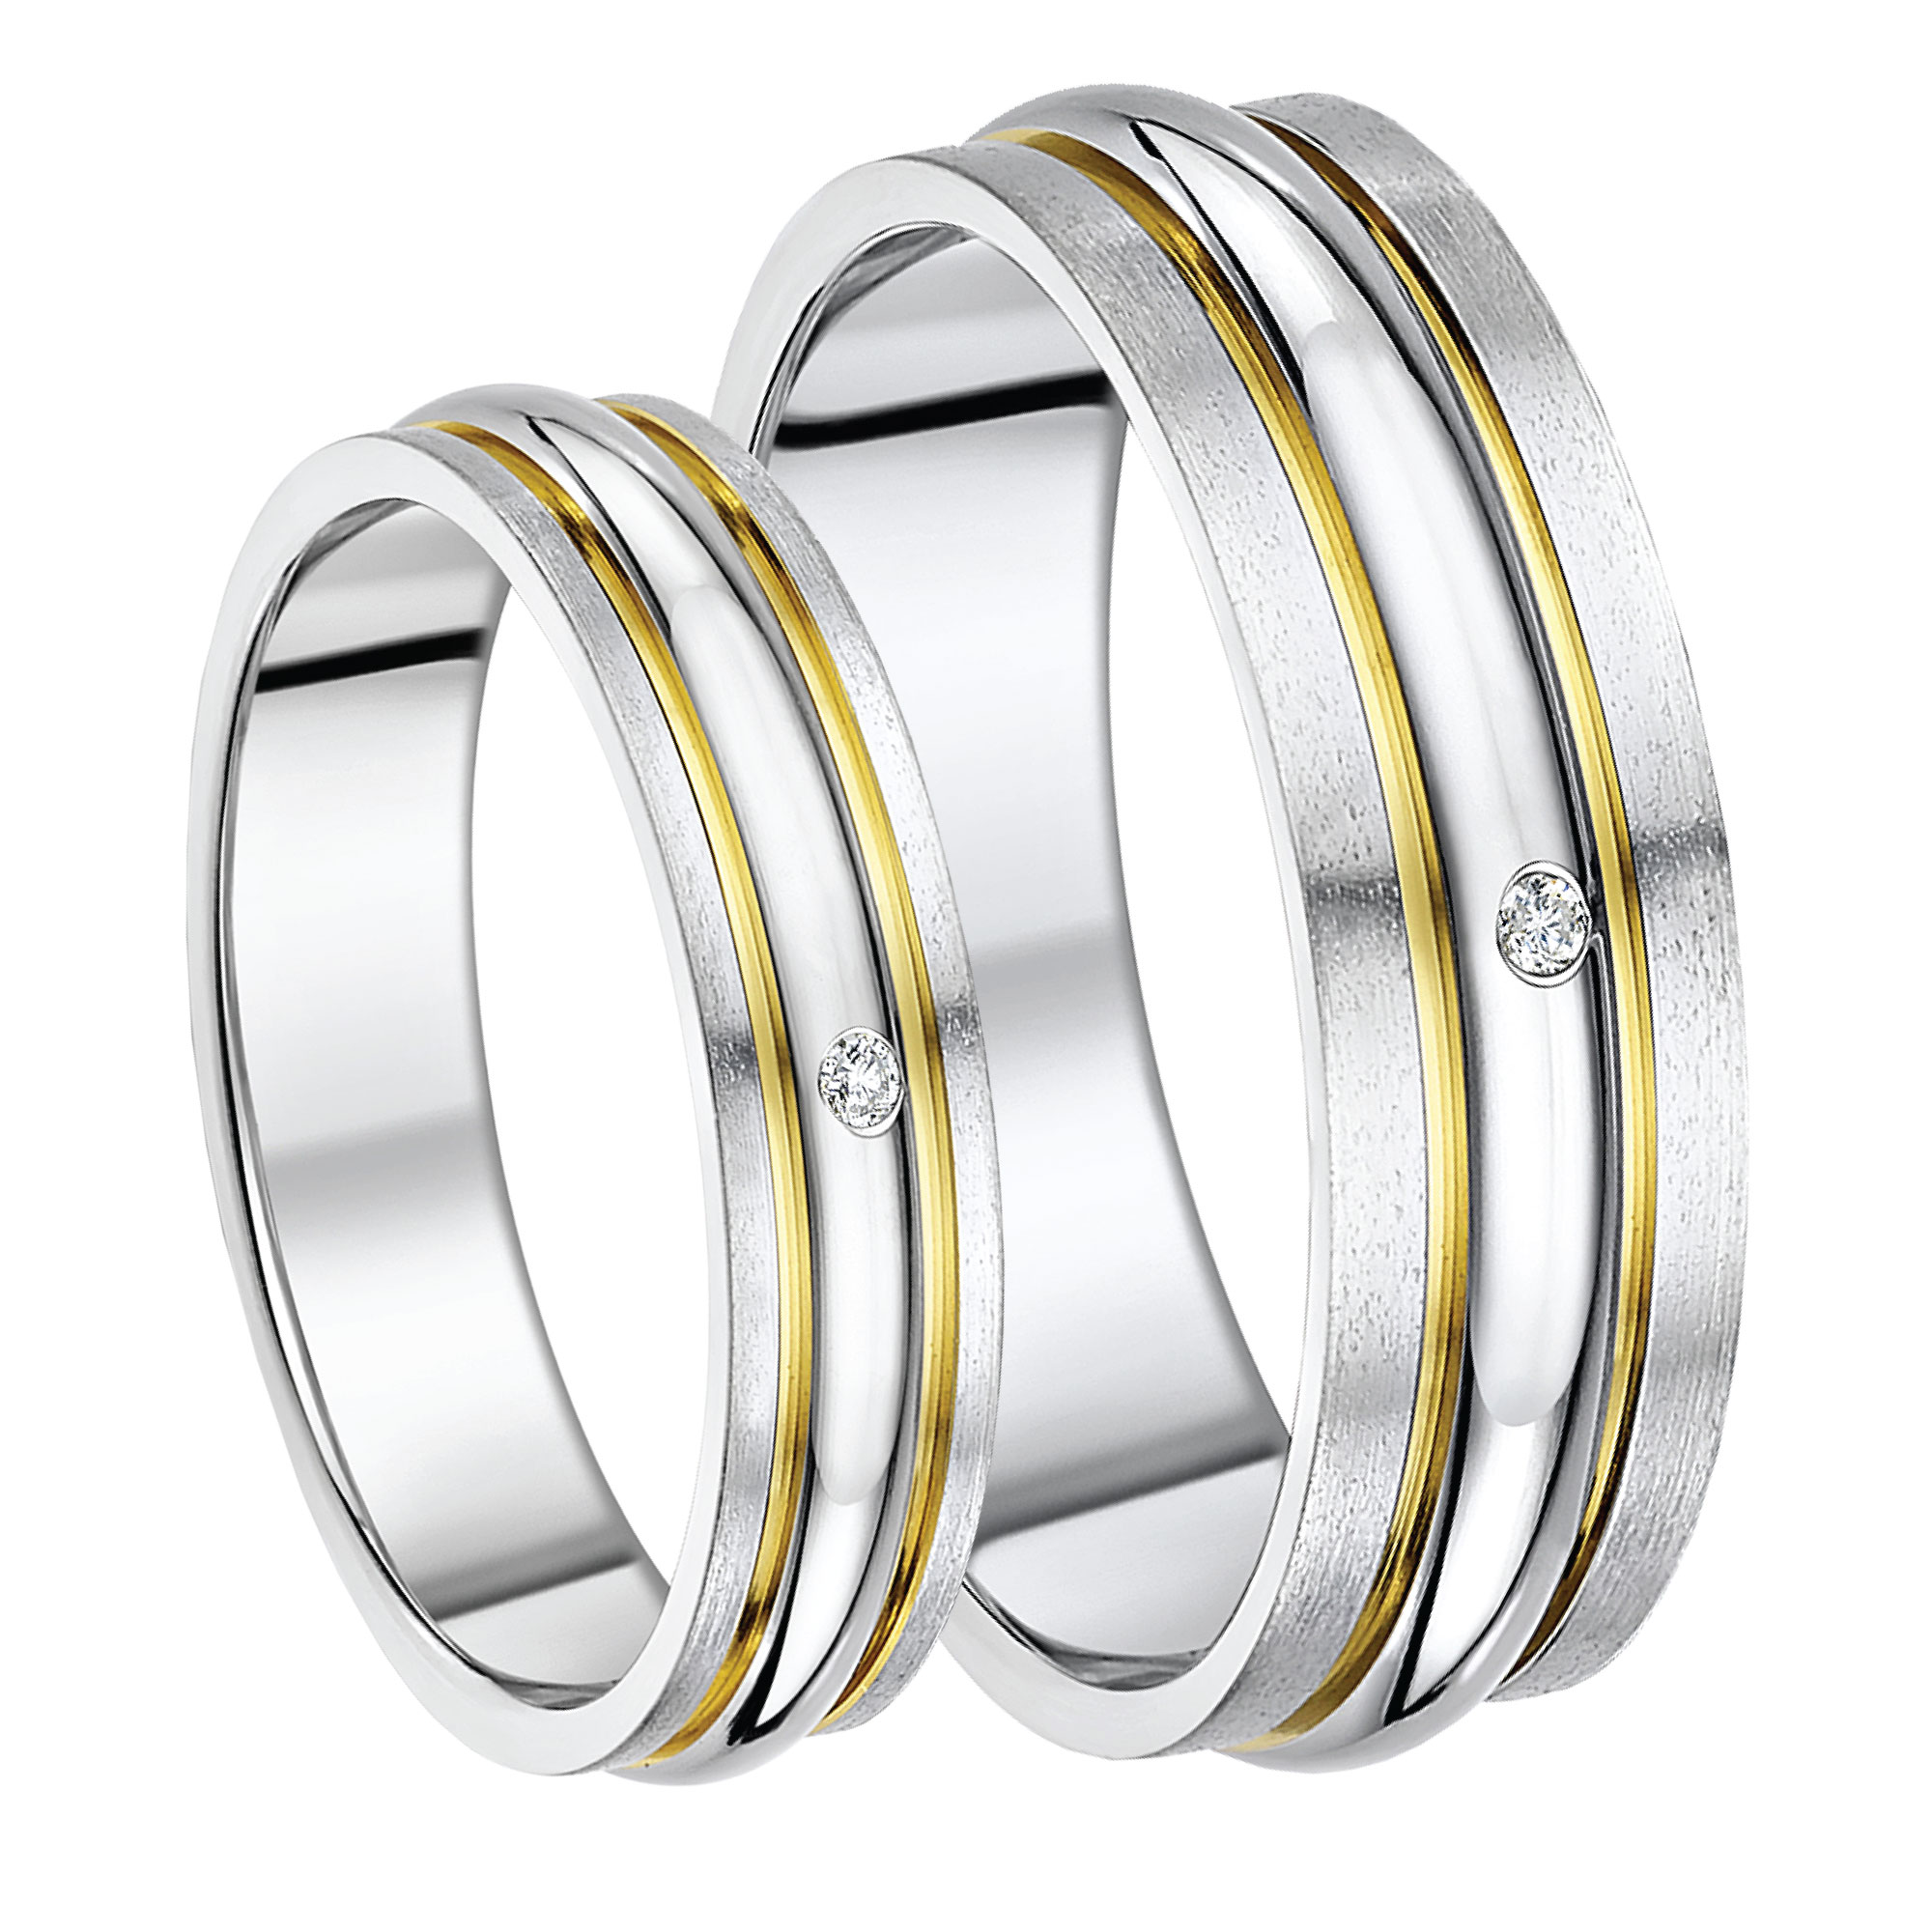 grooved rings amp his diamond double ring bands of wedding unique tone band two titanium hers